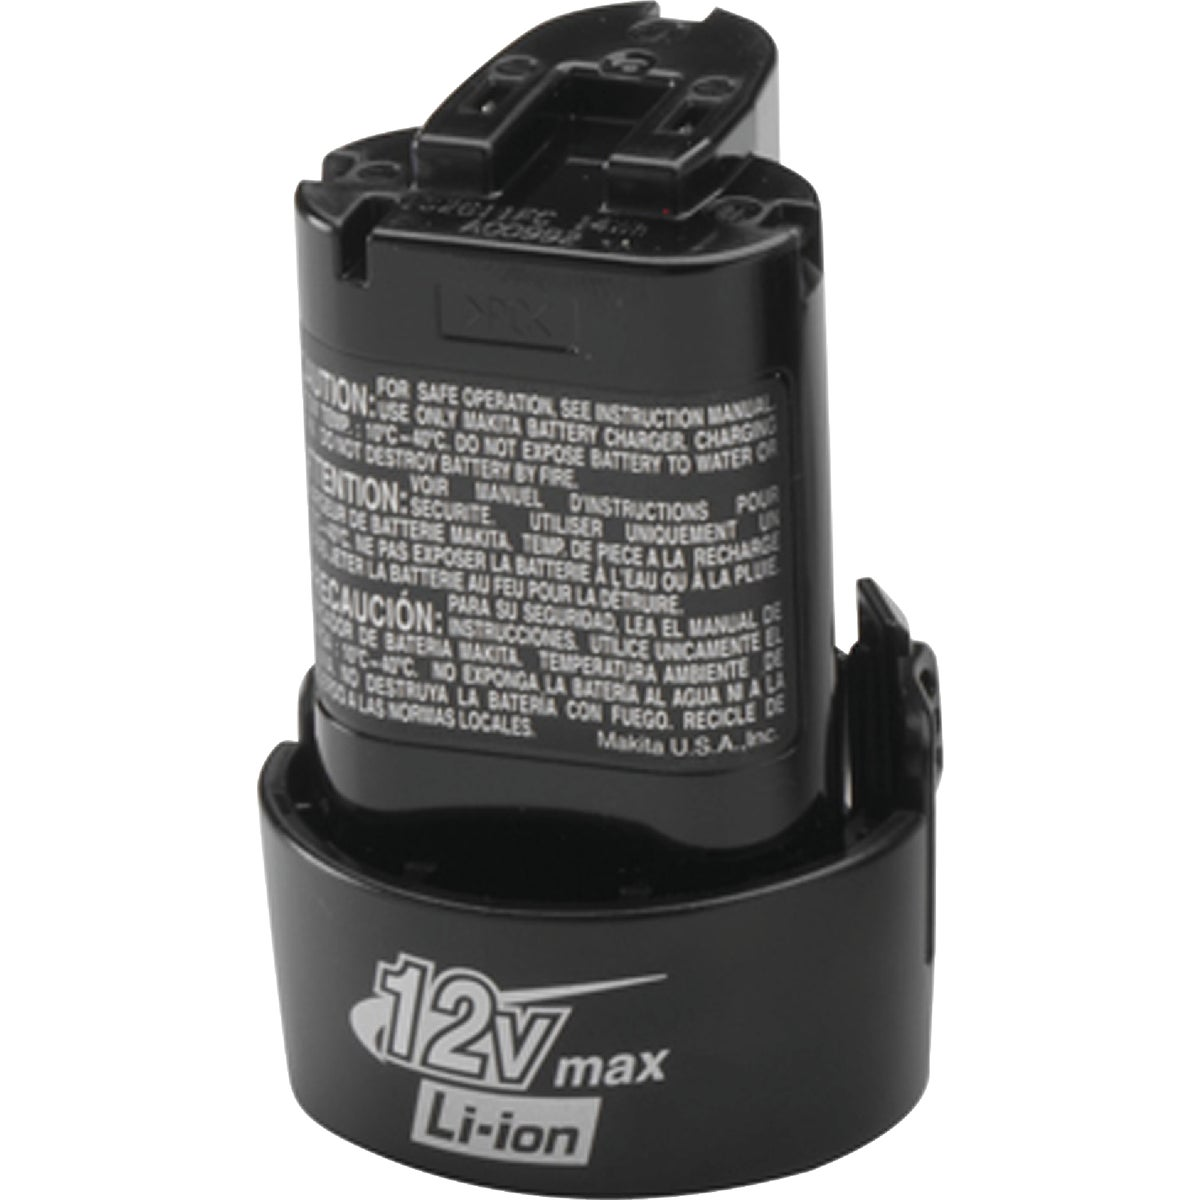 12V MAX LI-ION BATTERY - BL1014 by Makita Usa Accessory